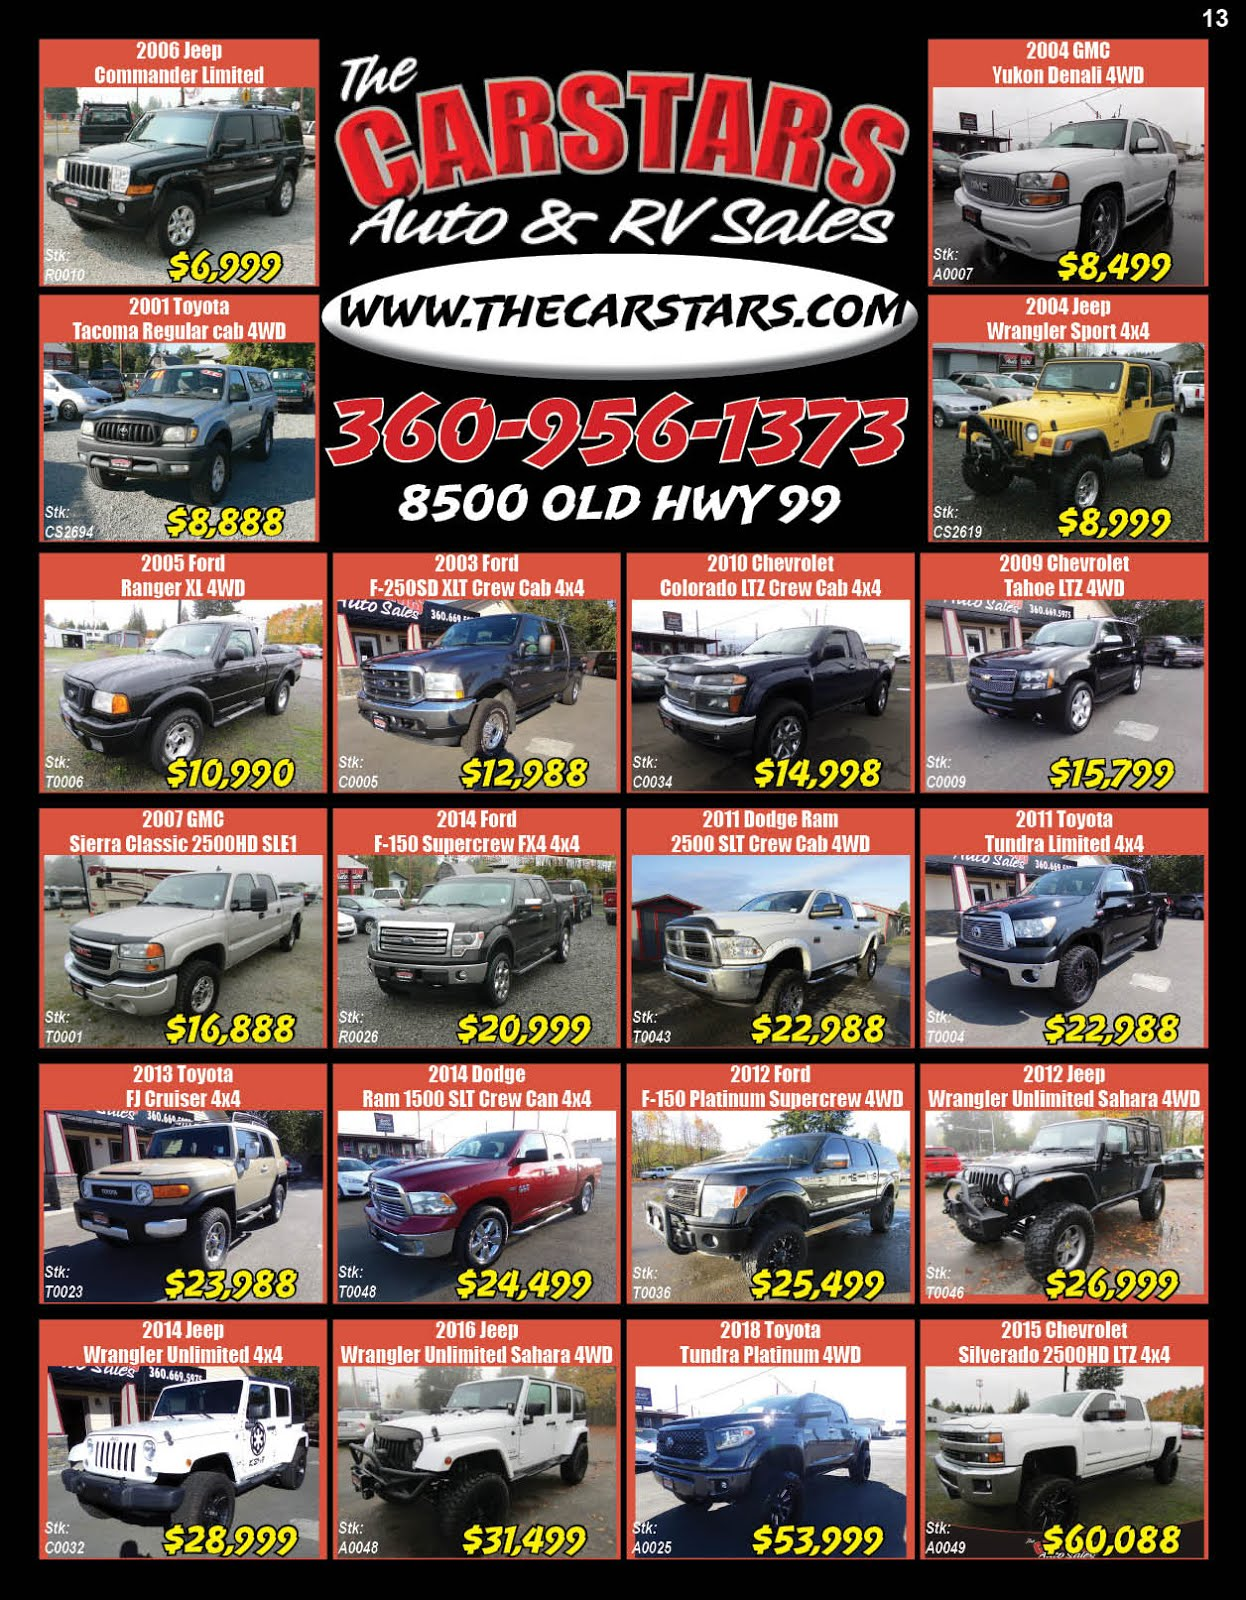 The CARSTARS Auto & RV Sales